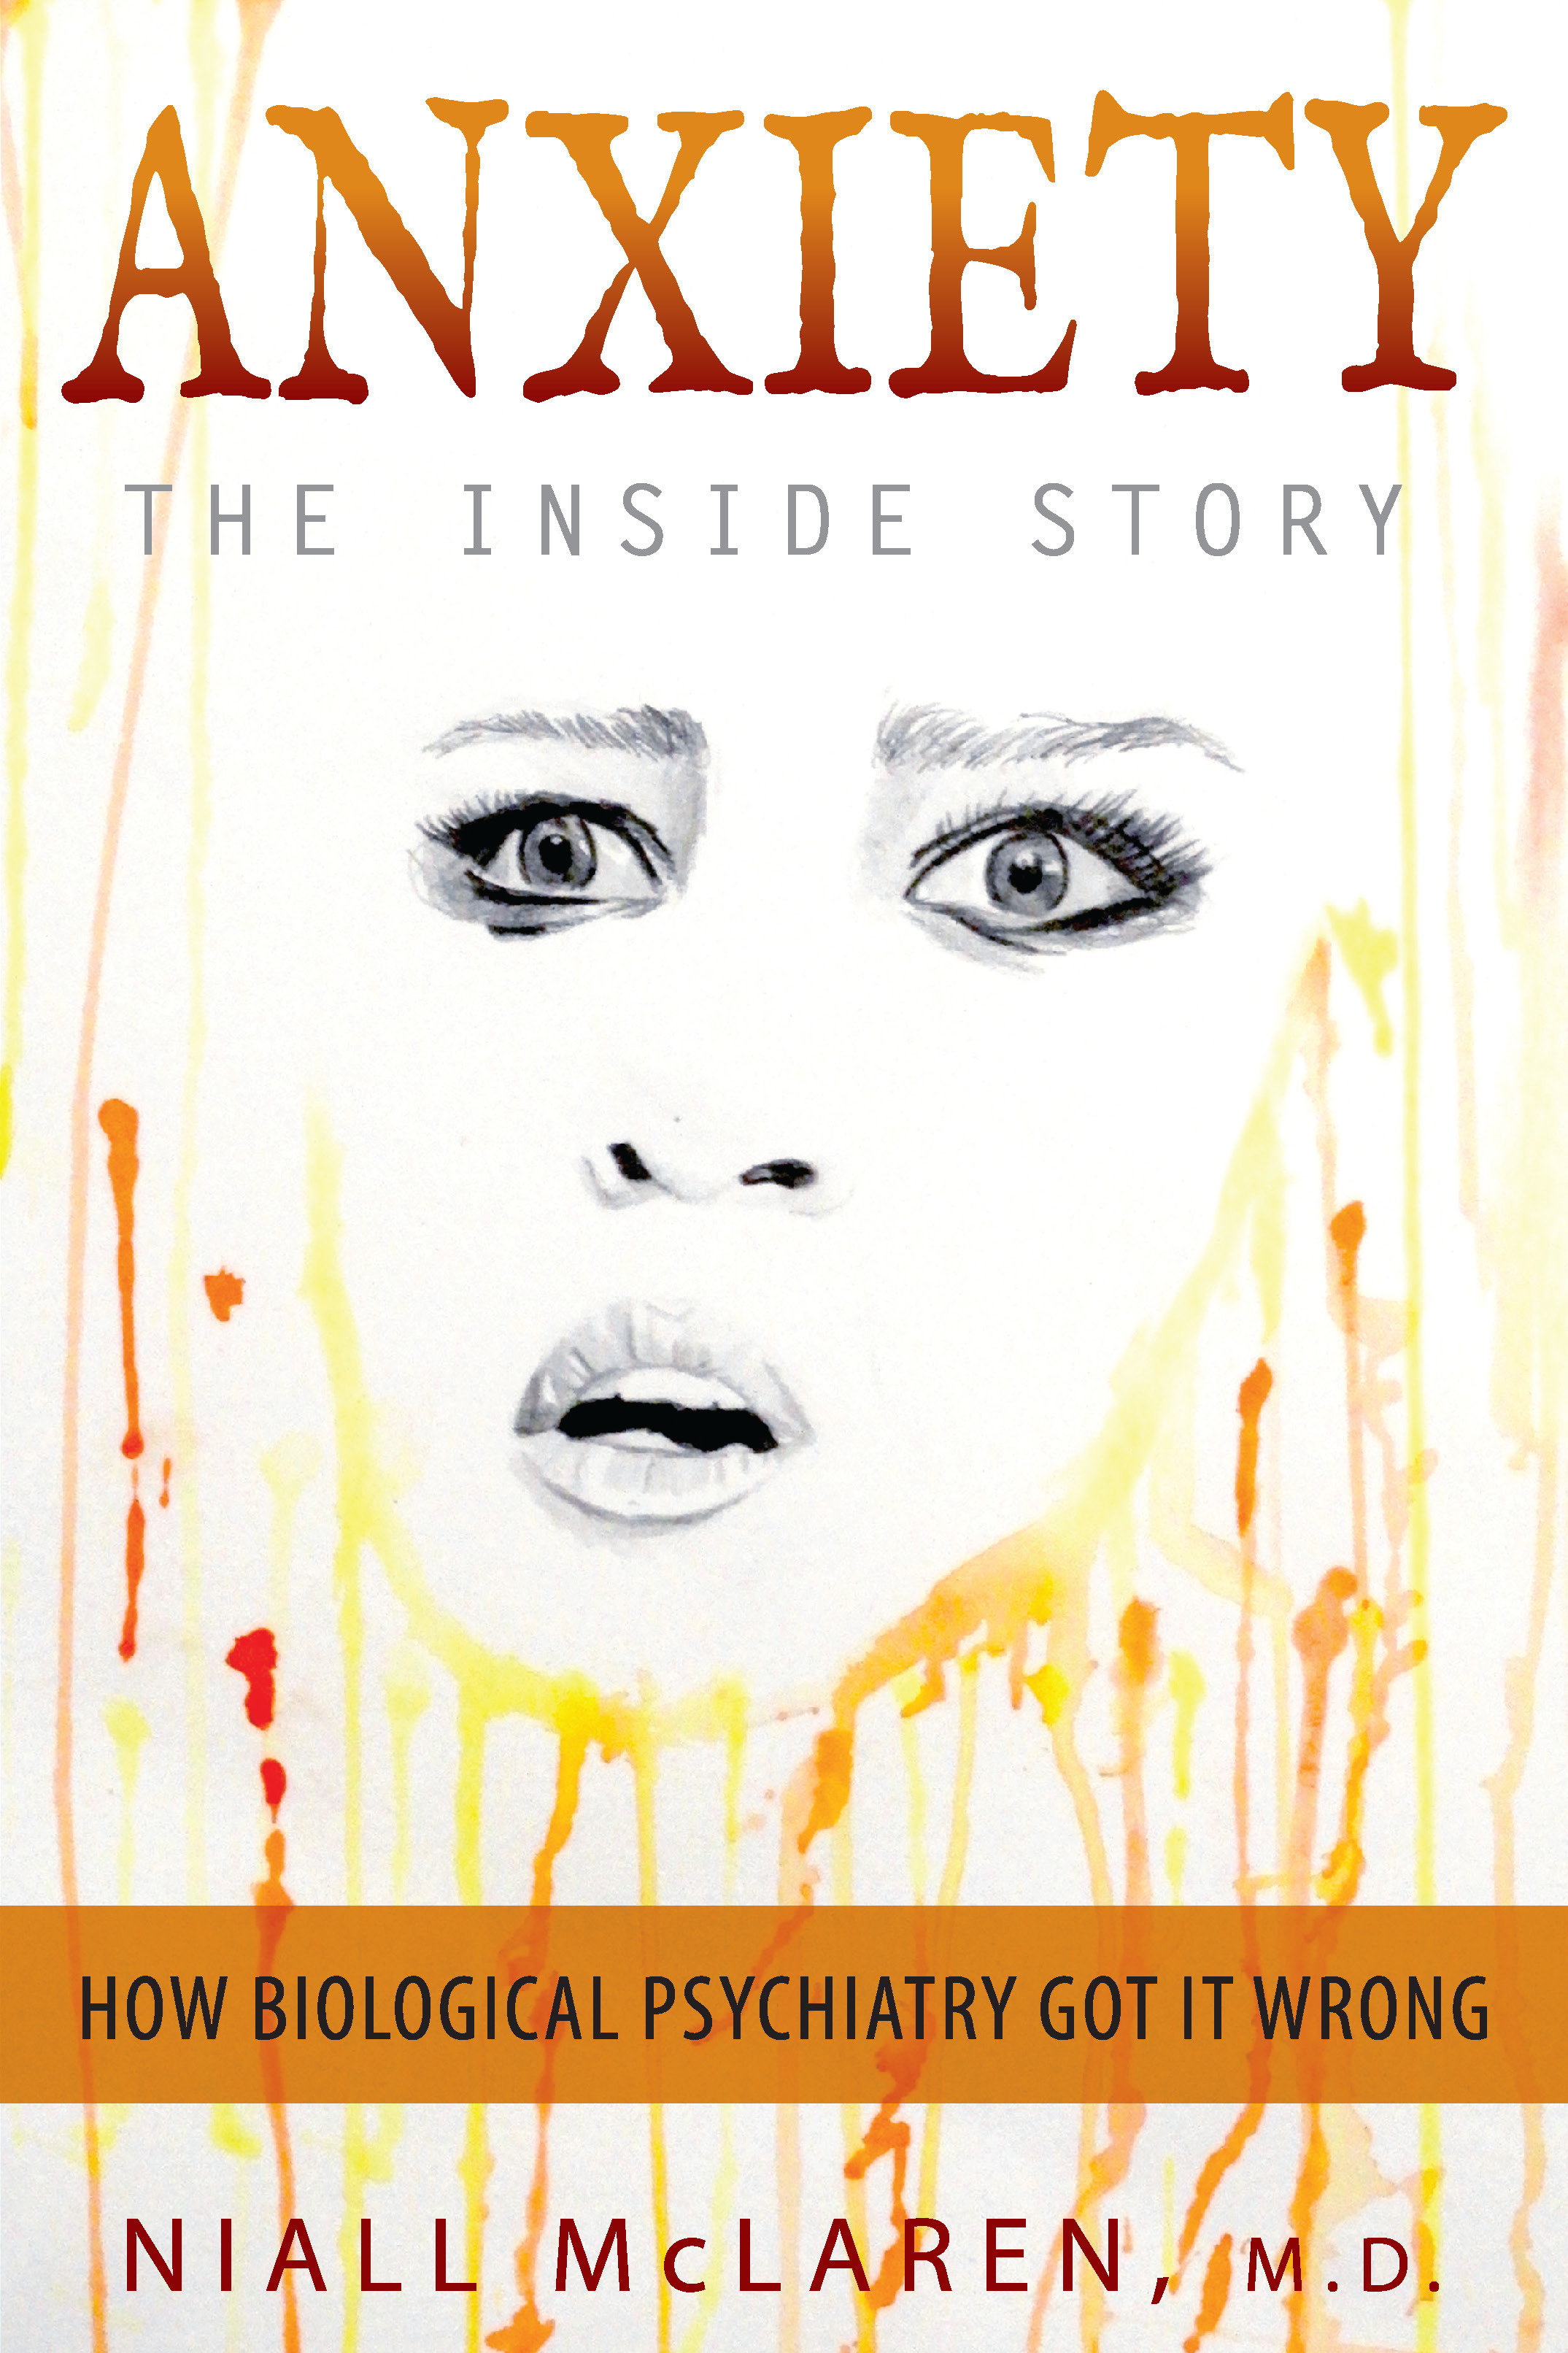 Anxiety - The Inside Story 978-1-61599-410-6